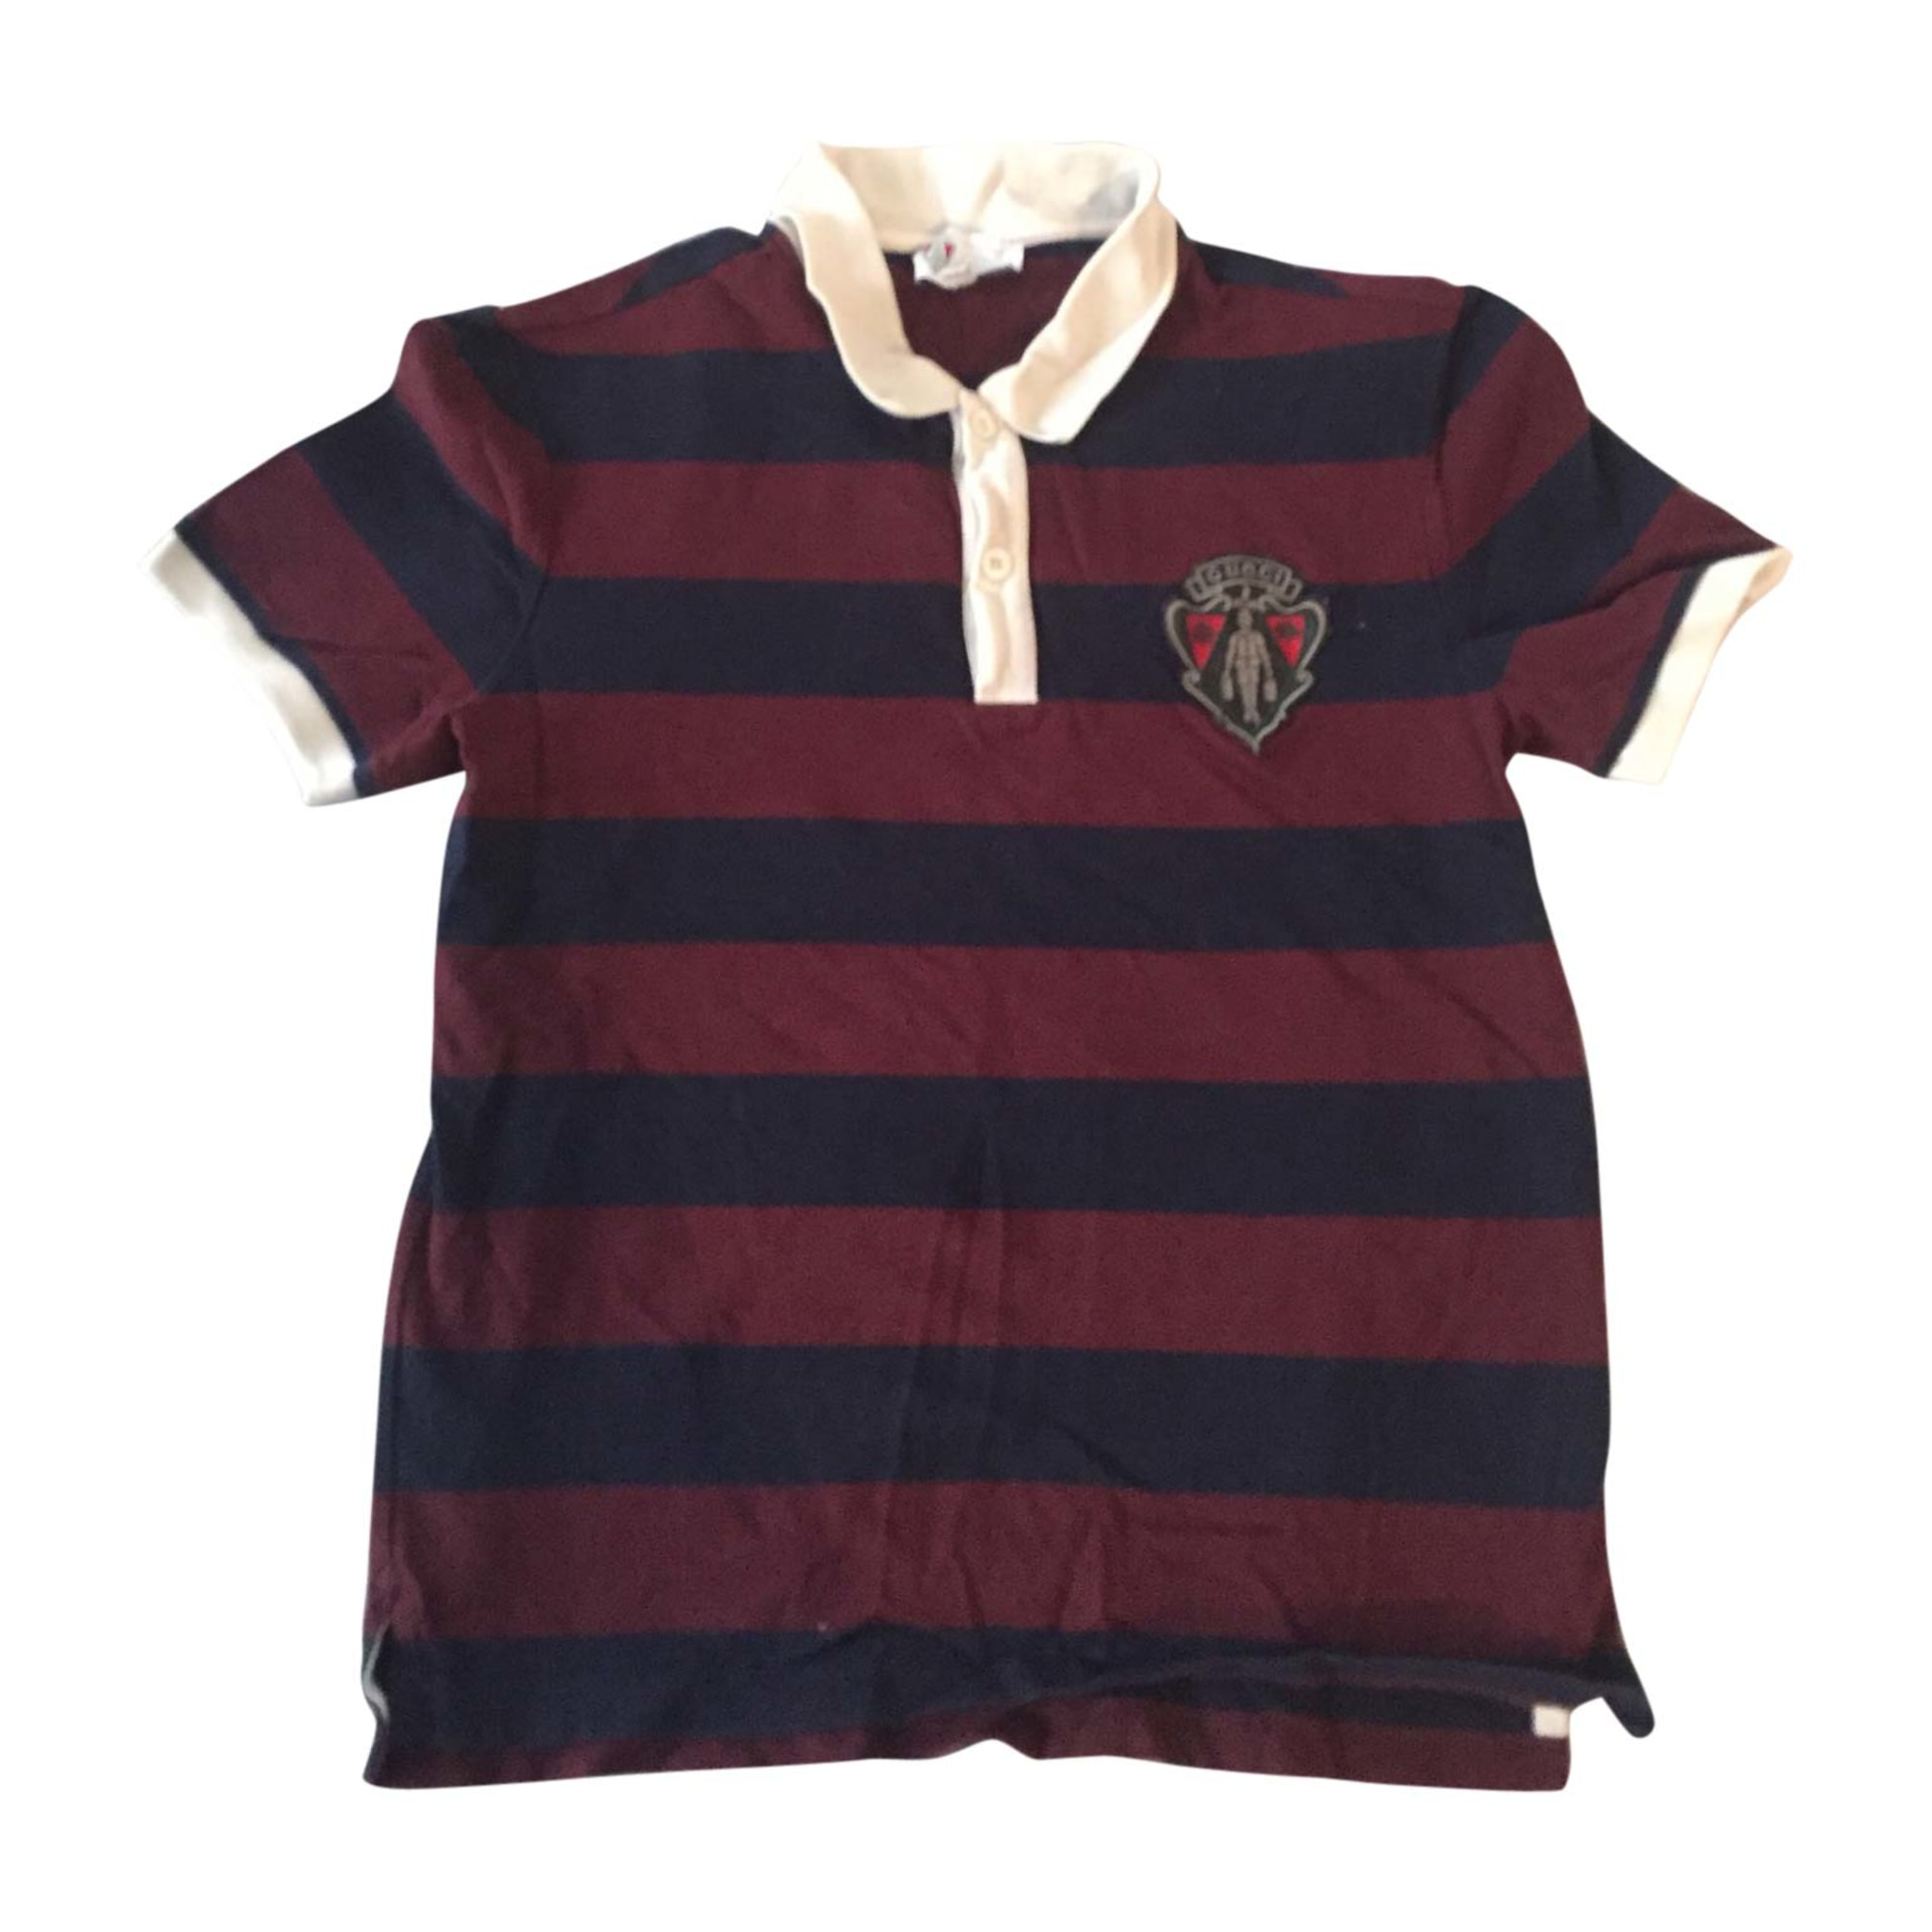 Polo GUCCI Bordeaux/marine, blanc